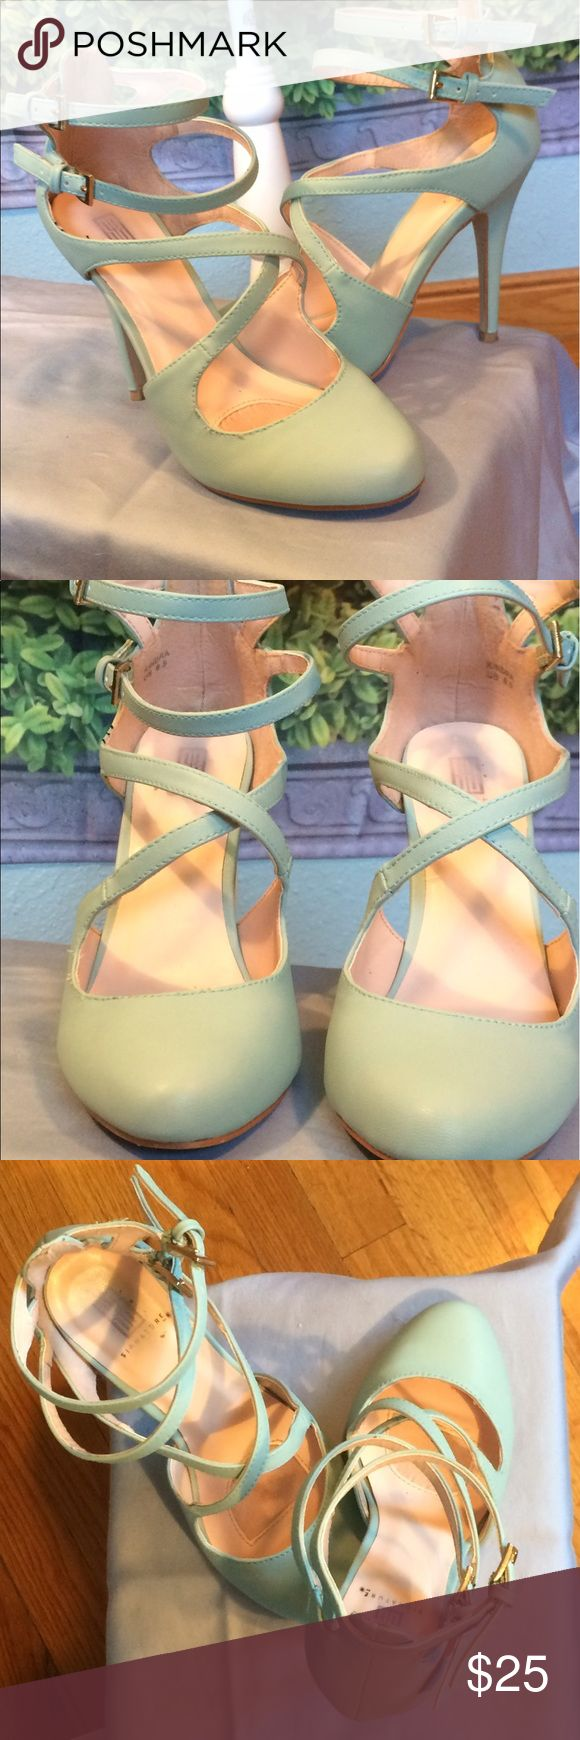 "Shoe Dazzle - Aqua strappy heels Shoe Dazzle - Gorgeous aqua heels with strappy details. 4"" height. Open to reasonable offers. Shoes Heels"